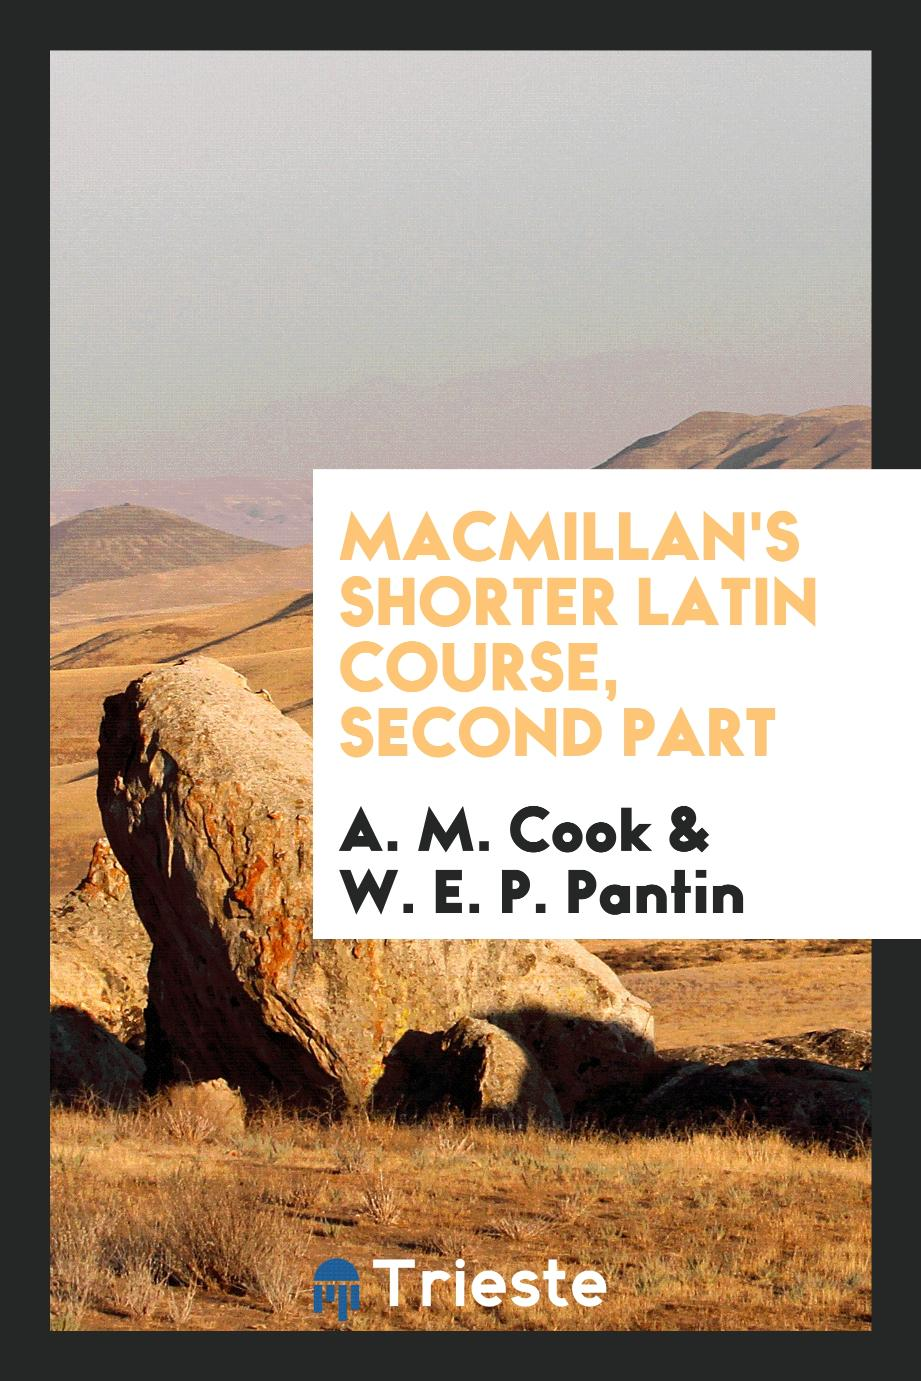 Macmillan's Shorter Latin Course, Second Part